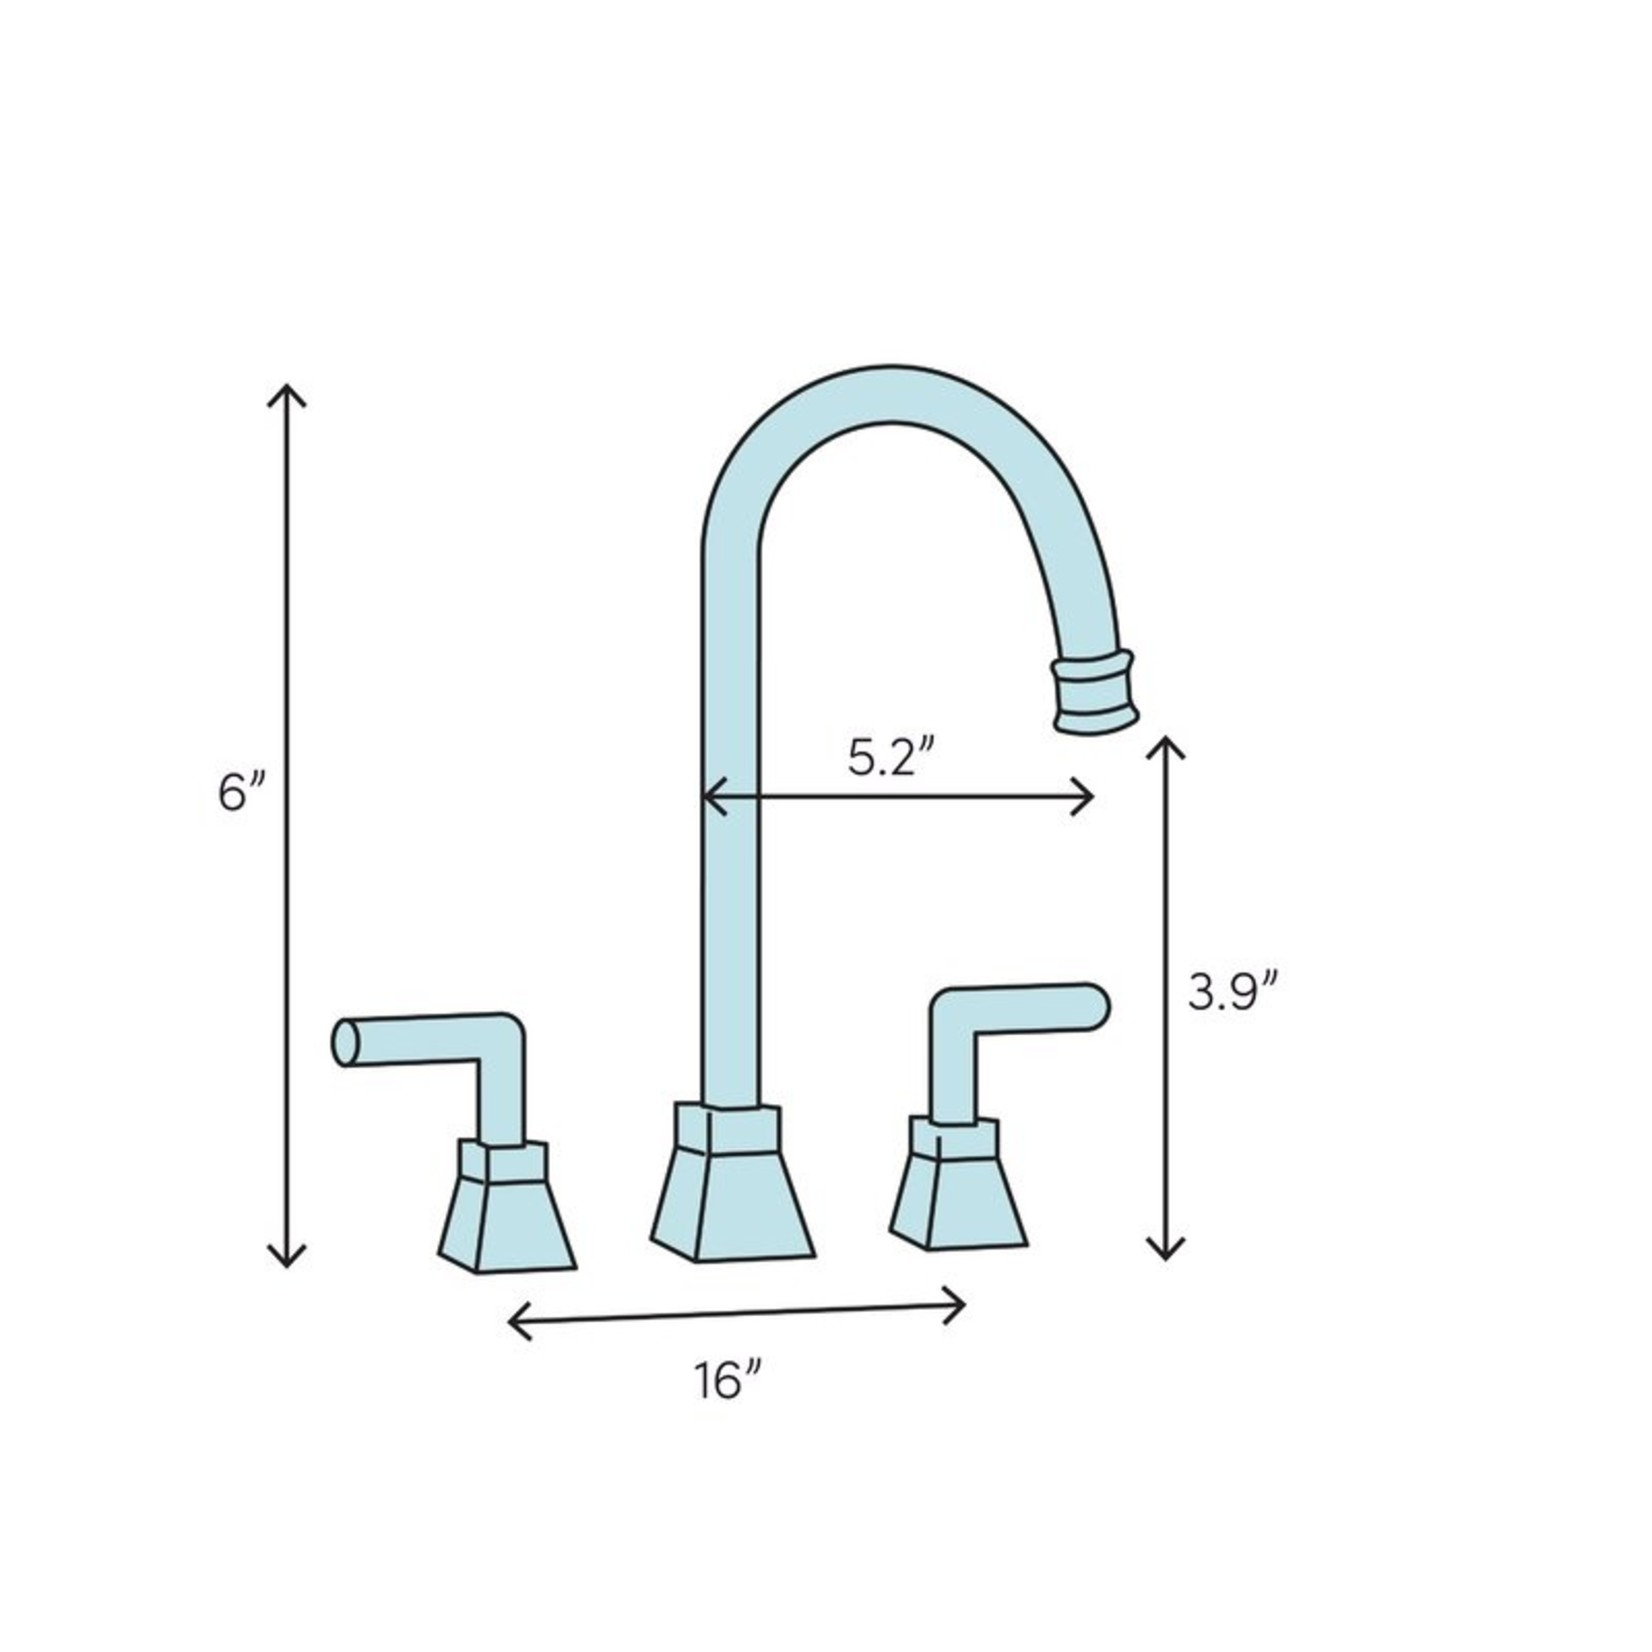 *Victorian Widespread Bathroom Faucet with Drain Assembly